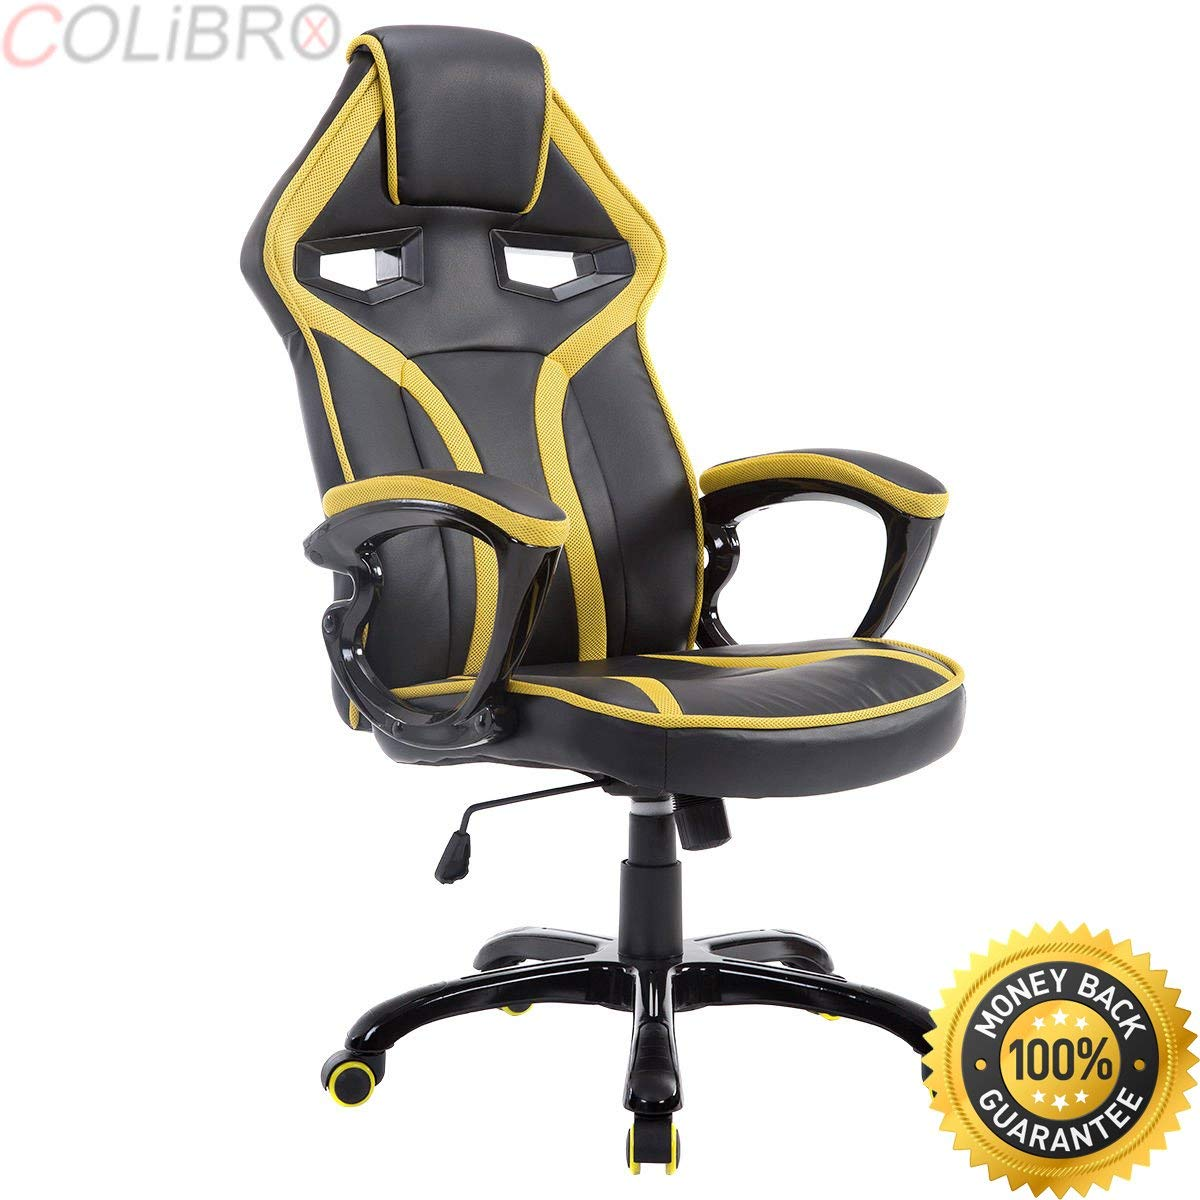 racing seat office chair diy glider rocker covers cheap gaming find deals on line at alibaba com get quotations colibrox race car style bucket high back desk